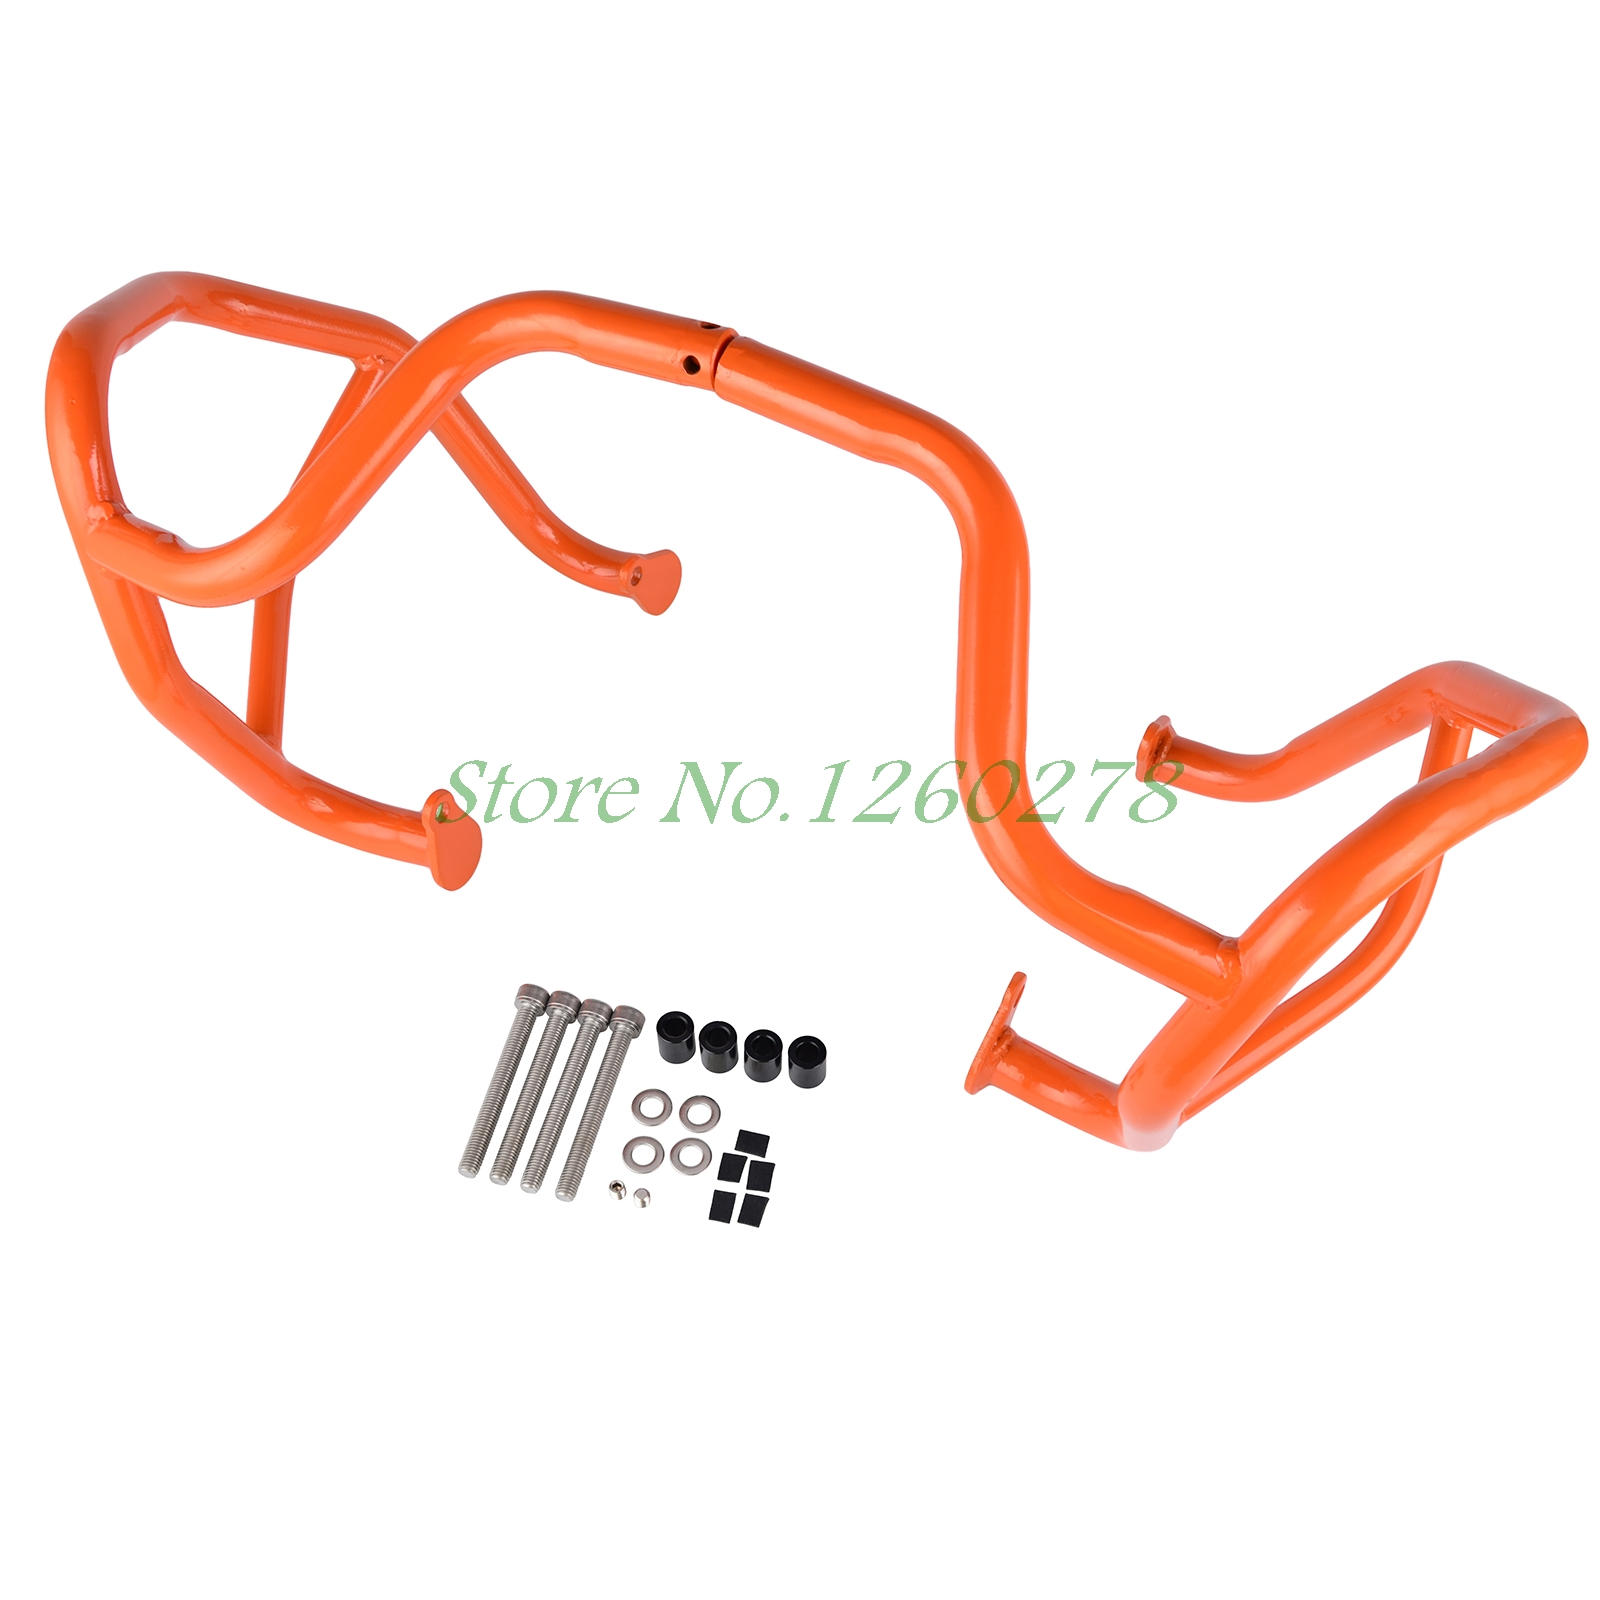 Motorcycle Crash Bar Frame Engine Protection Guard Bumper For KTM 1190 Adventure/ R 2013 2014 2015 2016 high quality for bmw r1200gs 2013 2014 2015 motorcycle upper engine guard highway crash bar protector silver